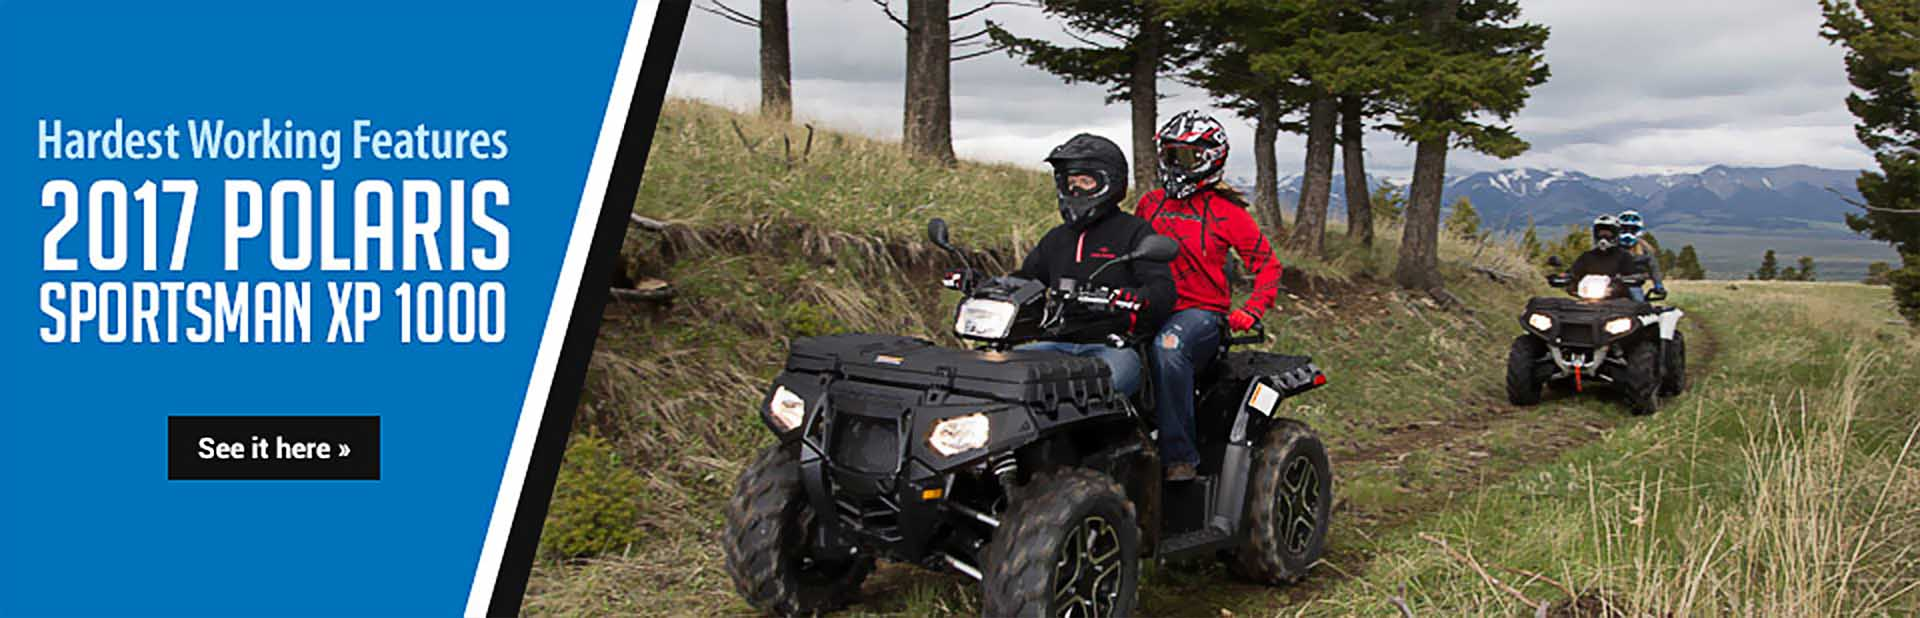 2017 Polaris Sportsman XP 1000: Click here to view the model.